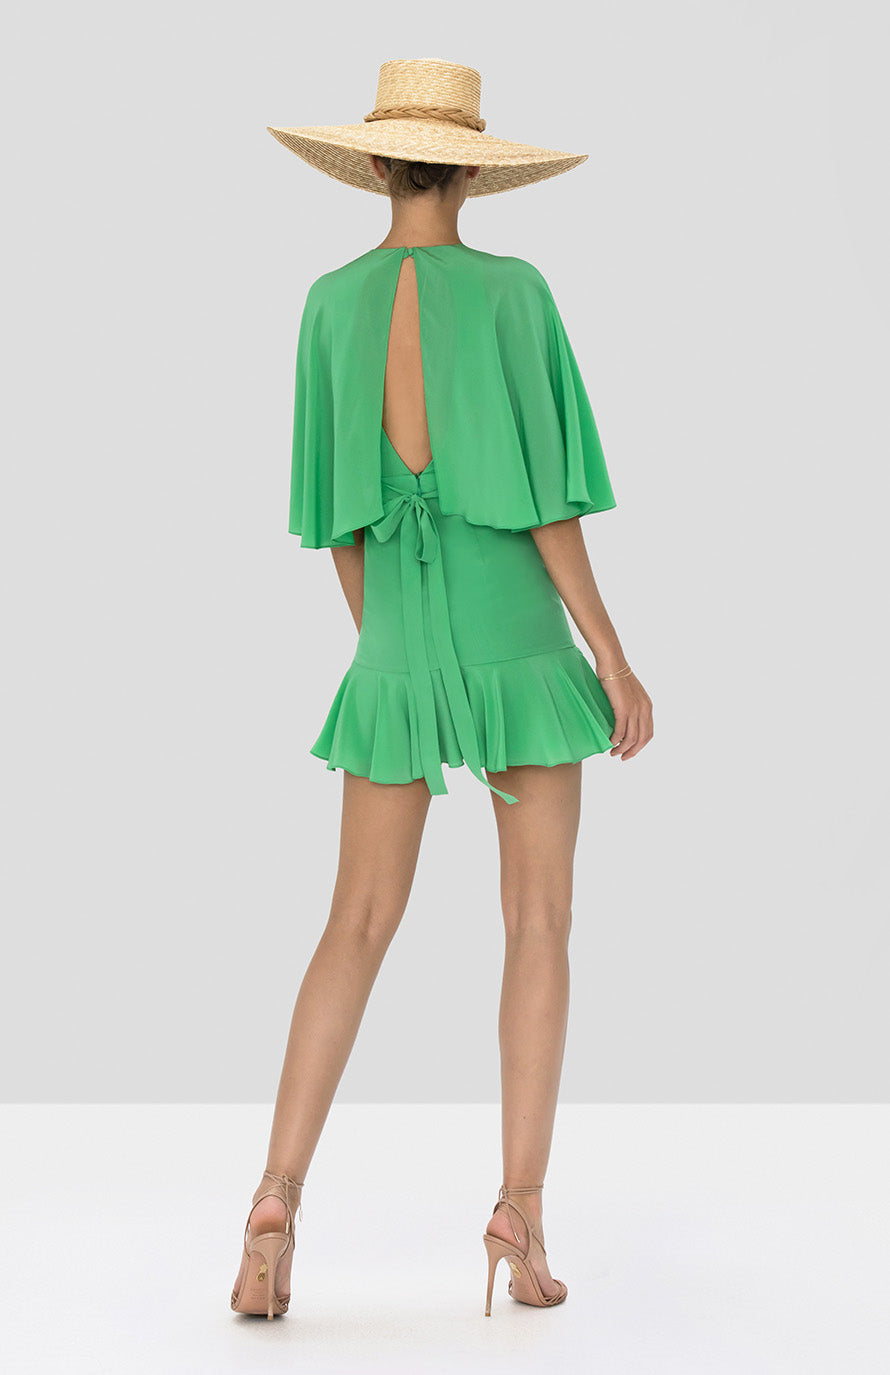 Alexis Tensia Dress in Kelly Green from Spring Summer 2020 Collection - Rear View